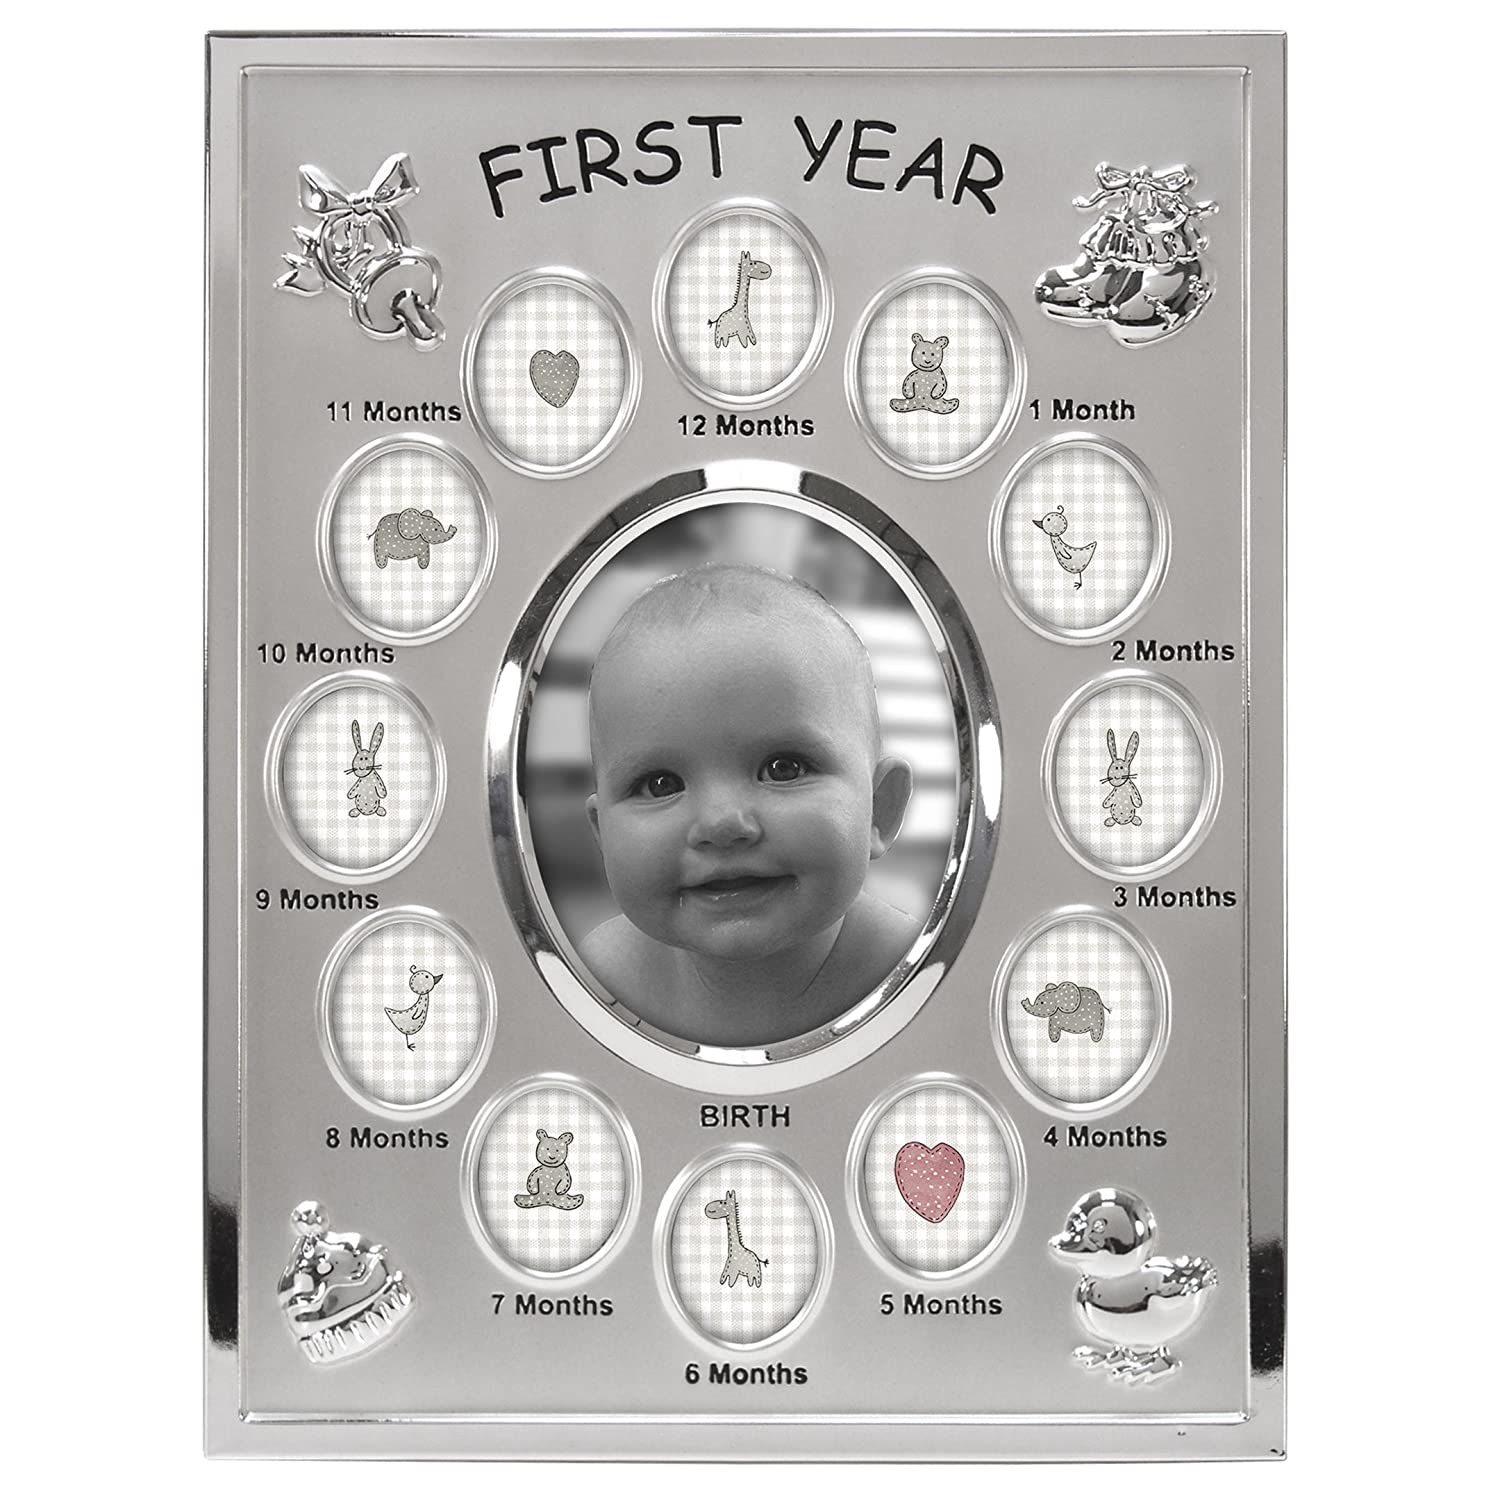 Amazon malden international designs babys first year collage amazon malden international designs babys first year collage picture frame 13 option 1 35x4 12 1x1 silver baby jeuxipadfo Images